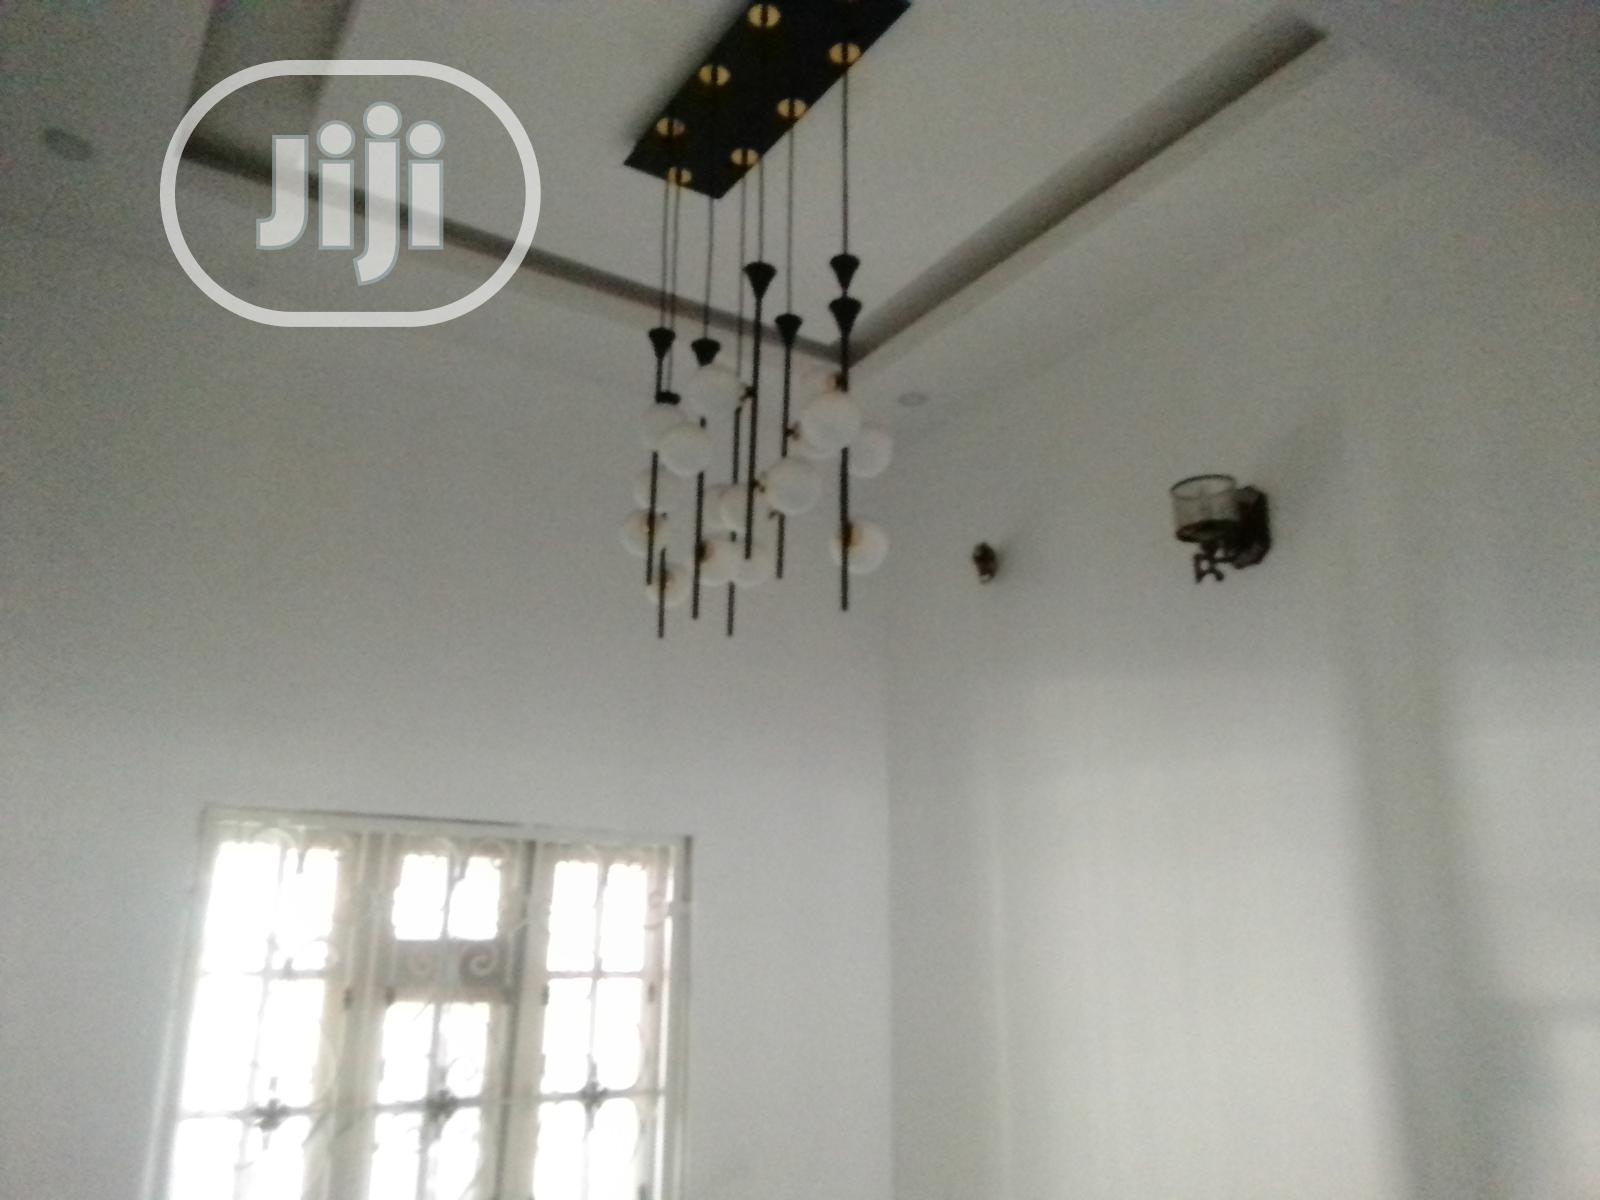 4 Bedrooms Bungalow   Houses & Apartments For Sale for sale in Gwarinpa, Abuja (FCT) State, Nigeria